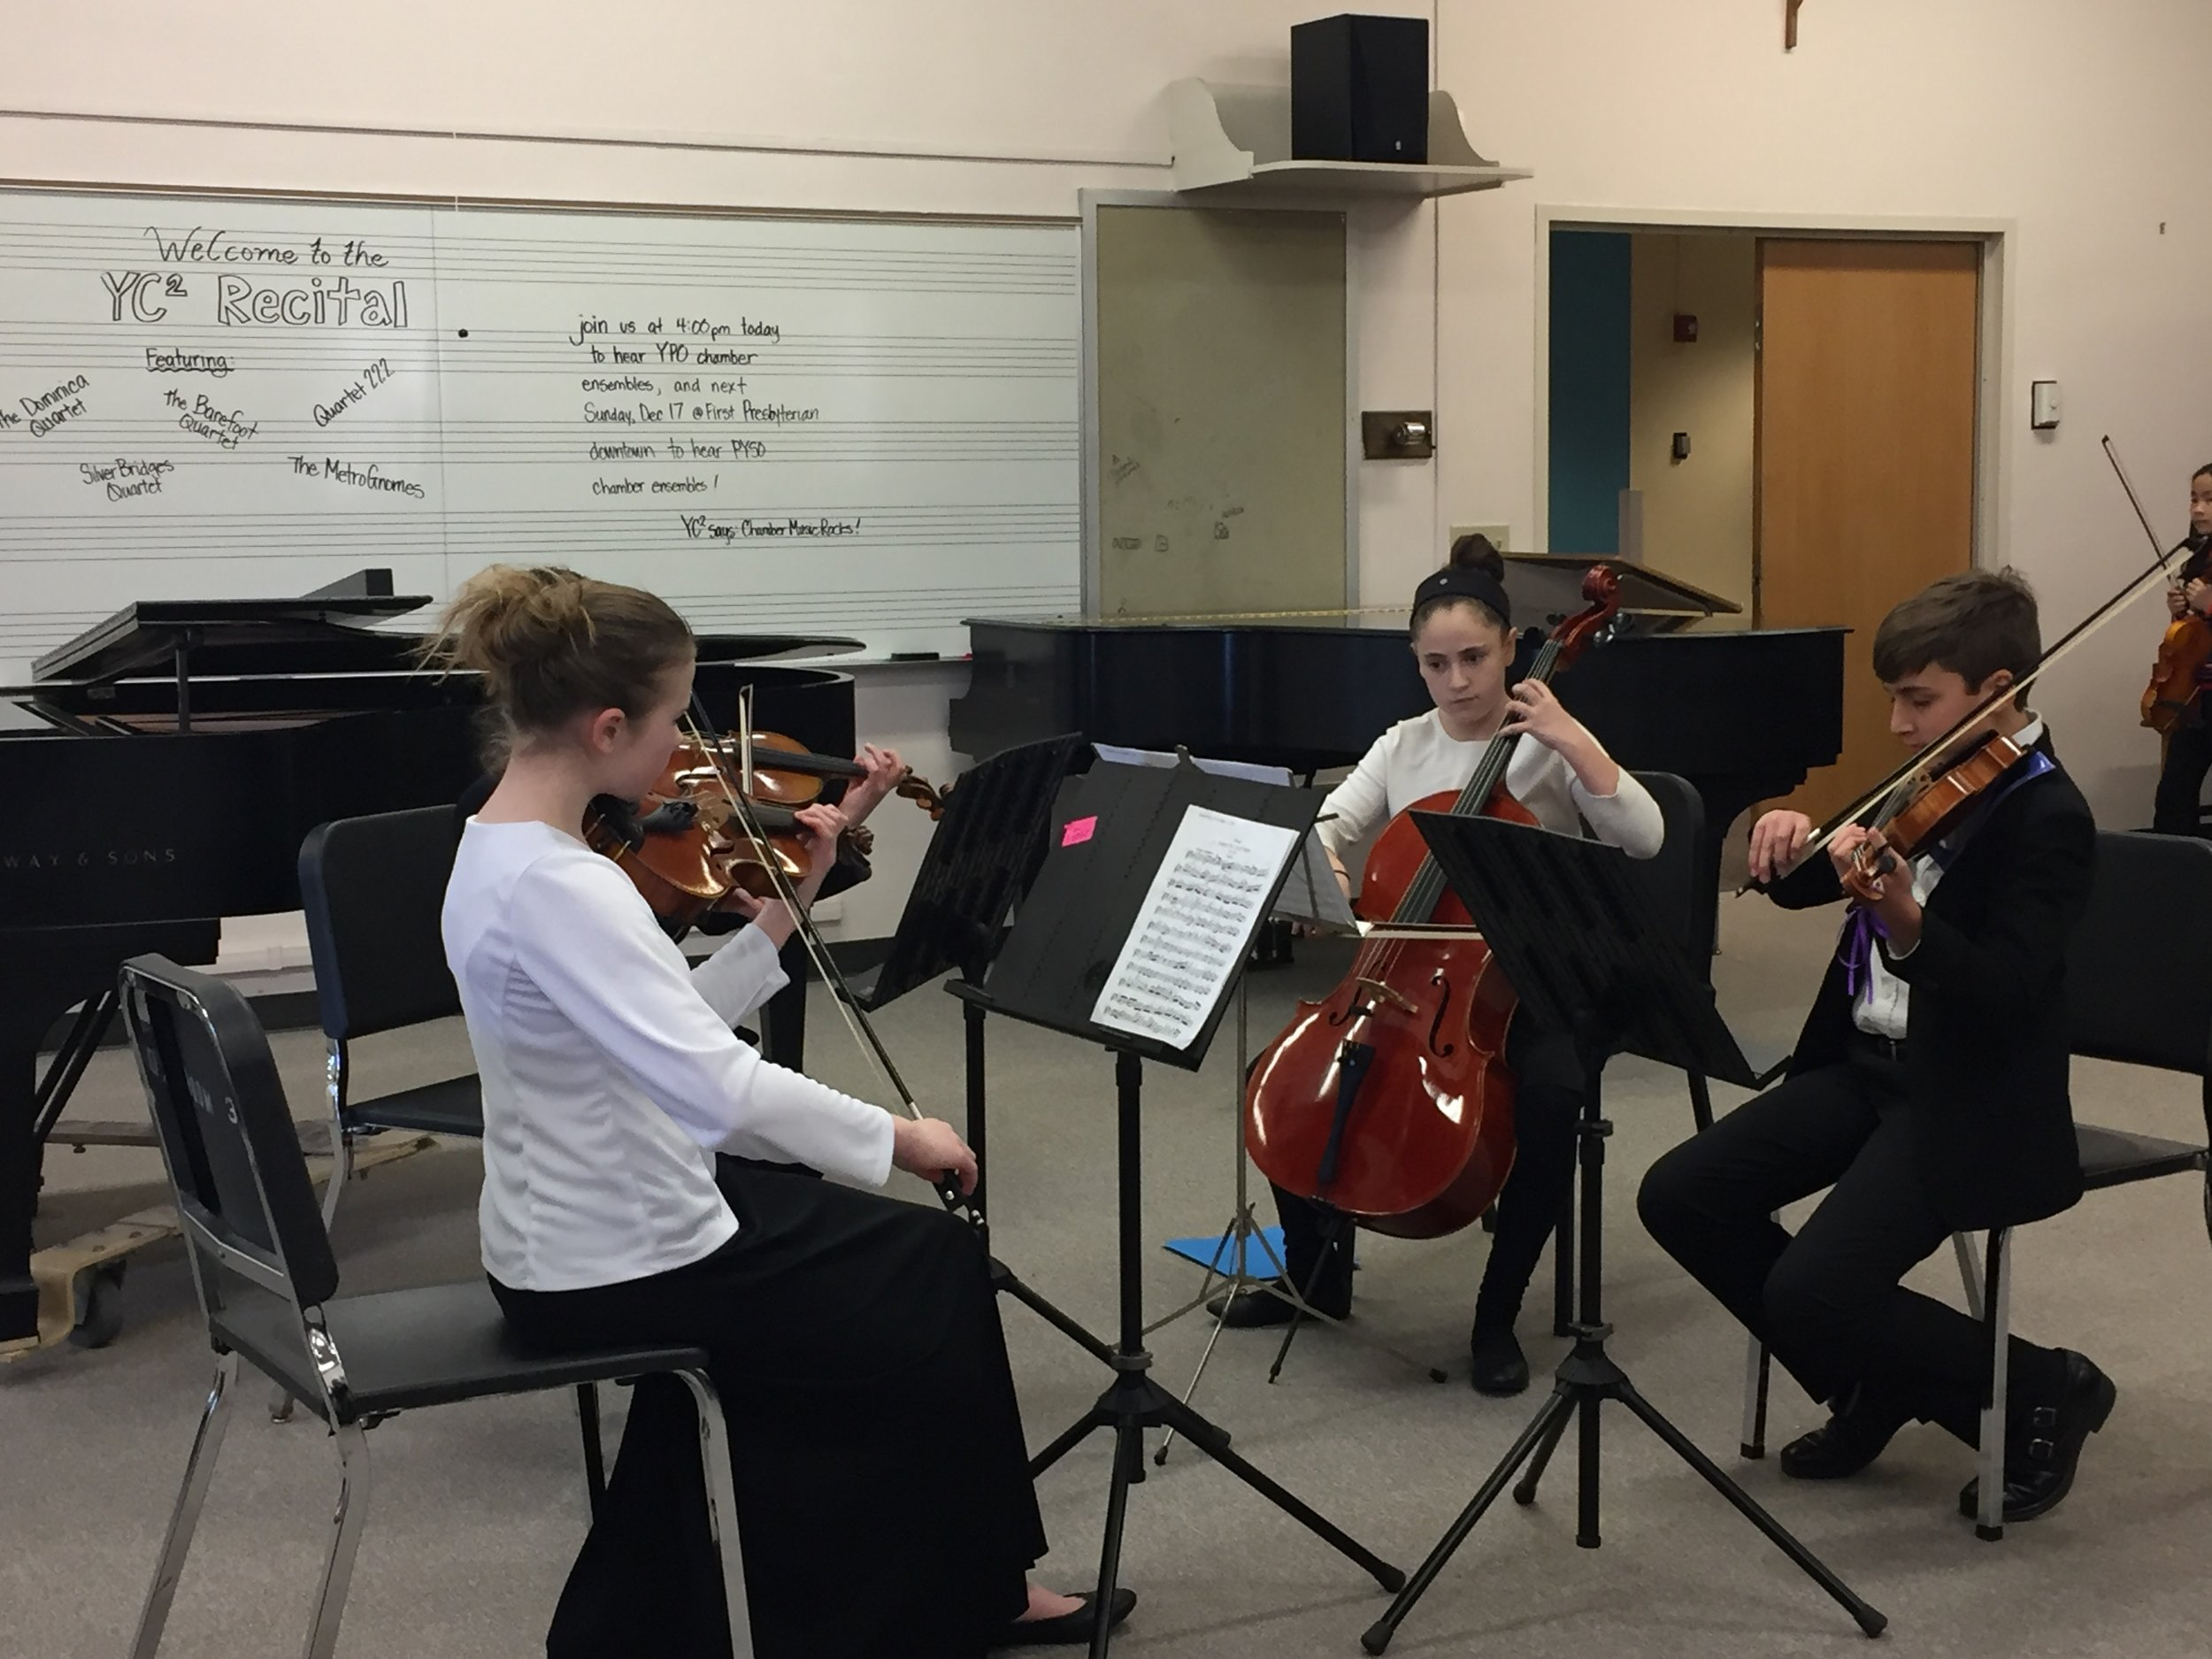 PYSO Pre-Concert - Saturday, March 4, 2018 6:30-7:15pm in the Heinz Hall LobbyYC² groups Barefoot Quartet, Dominica Quartet, Silver Bridges Quartet, and MetroGnomes performed in the lobby, followed by a free concert at 7:30pm by the Pittsburgh Youth Symphony Orchestra.